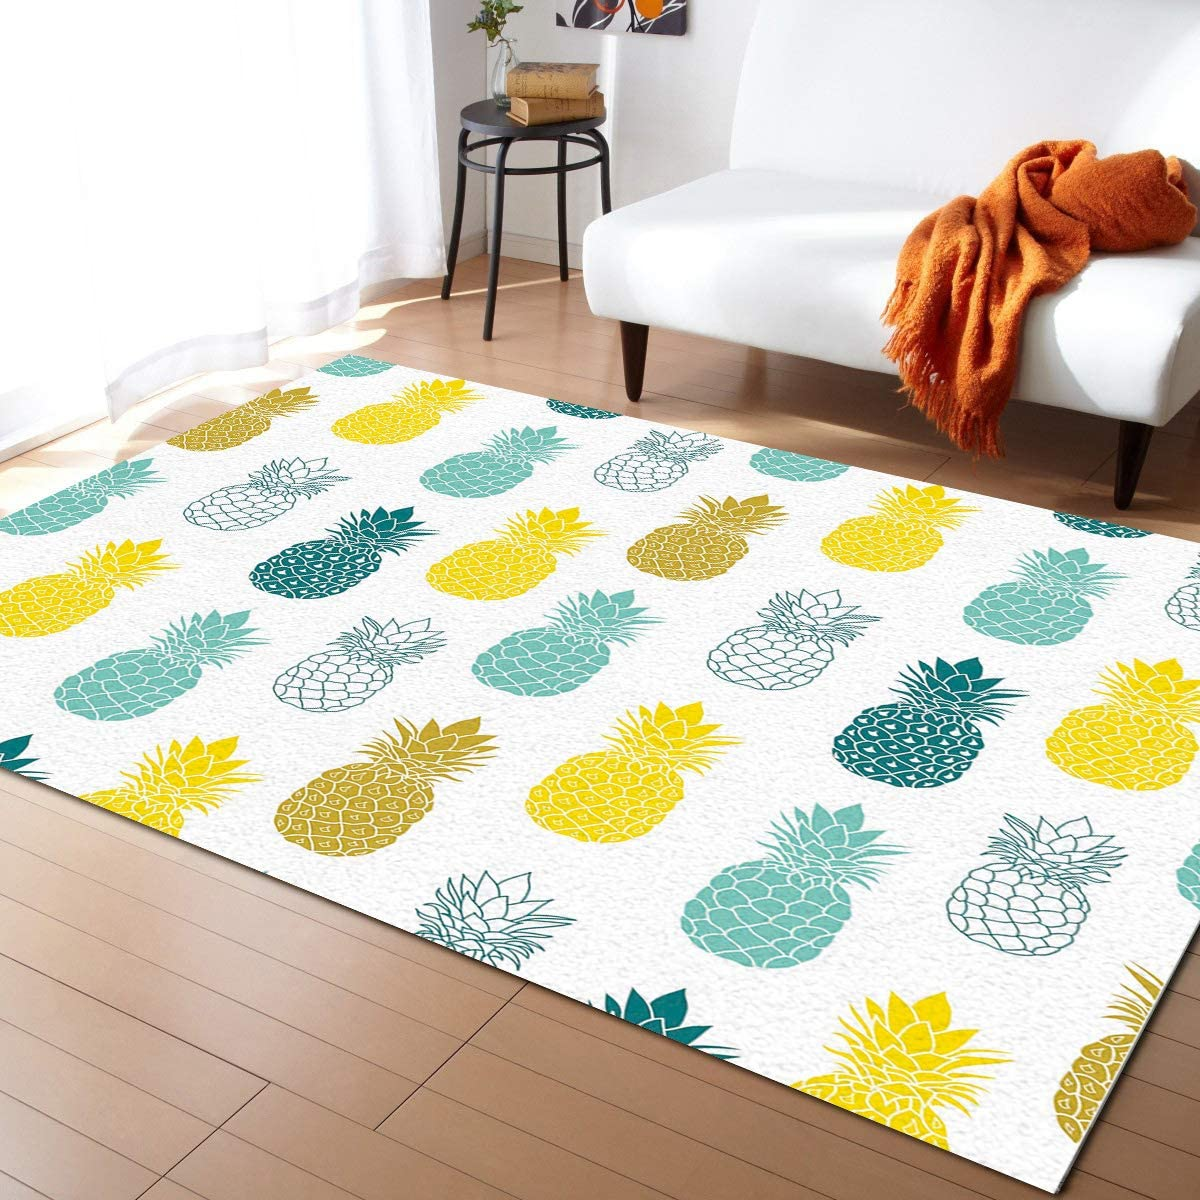 Prime Leader Modern Contemporary Area Color Rug Max 81% OFF Living for Room Max 49% OFF